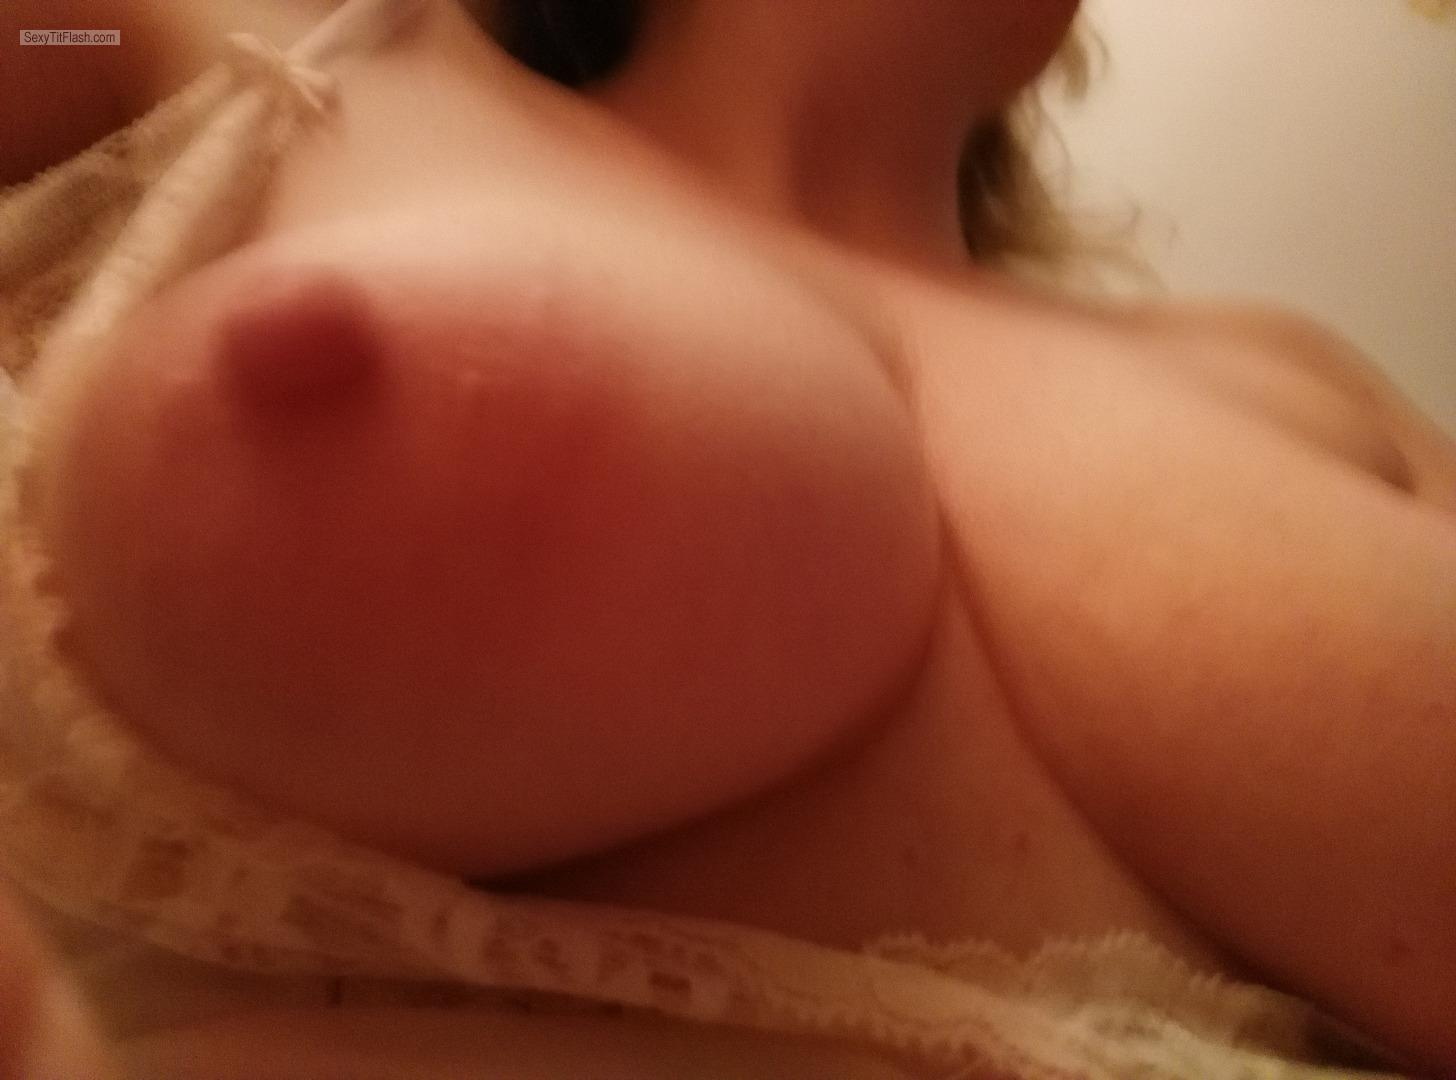 My Small Tits Topless Elisa